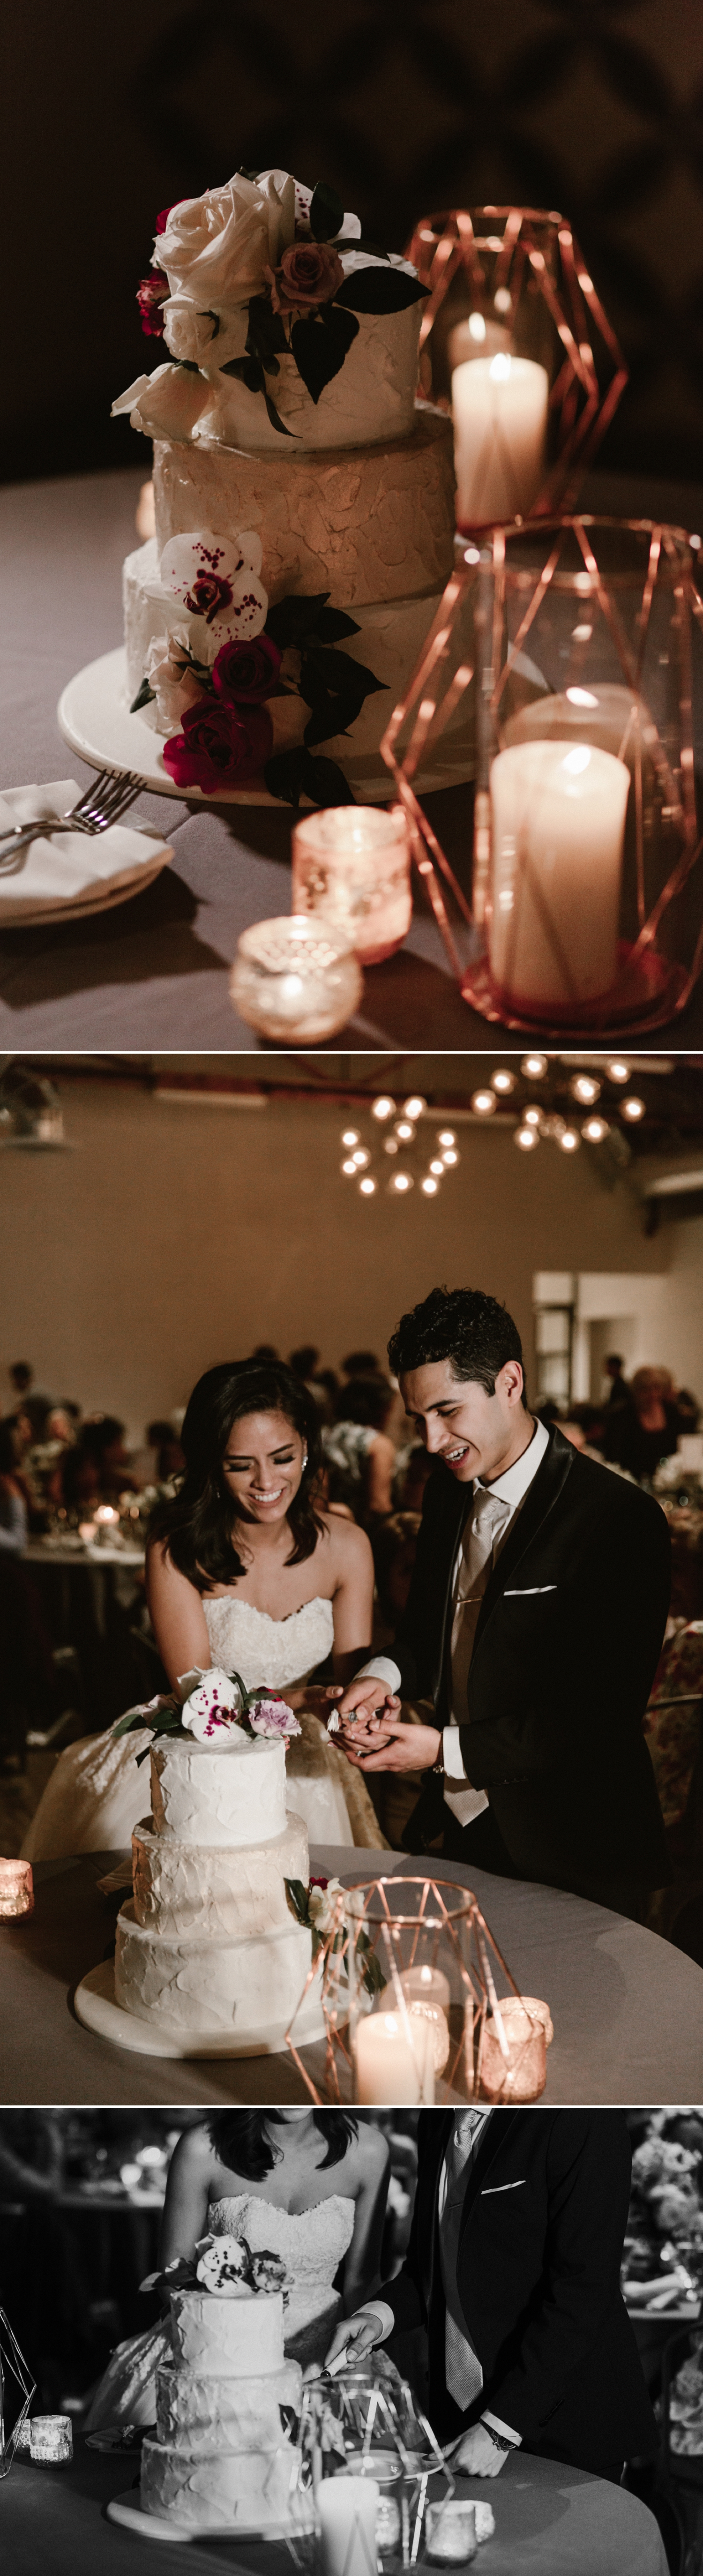 Cake cutting, Indoor wedding reception at 1912 in Santa Ana by Paige Nelson